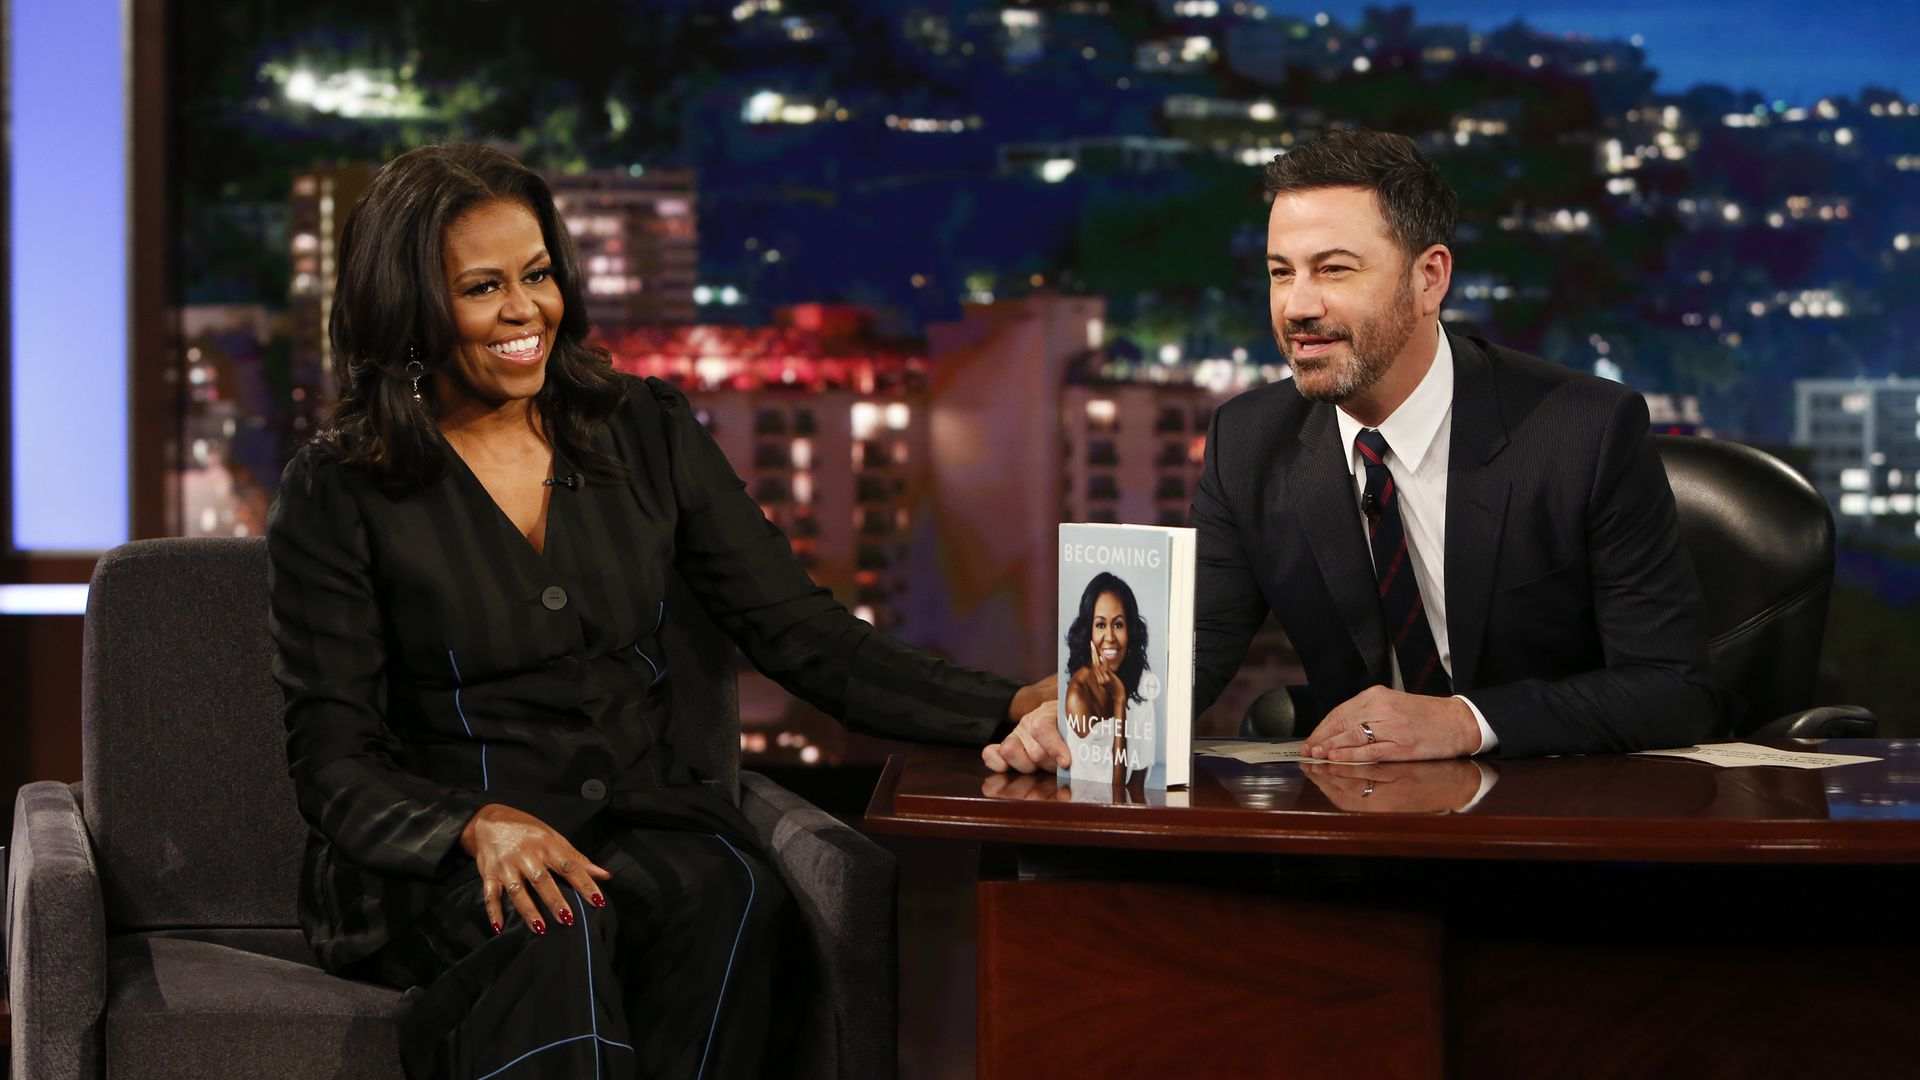 Michele Obama with Jimmy Kimmel